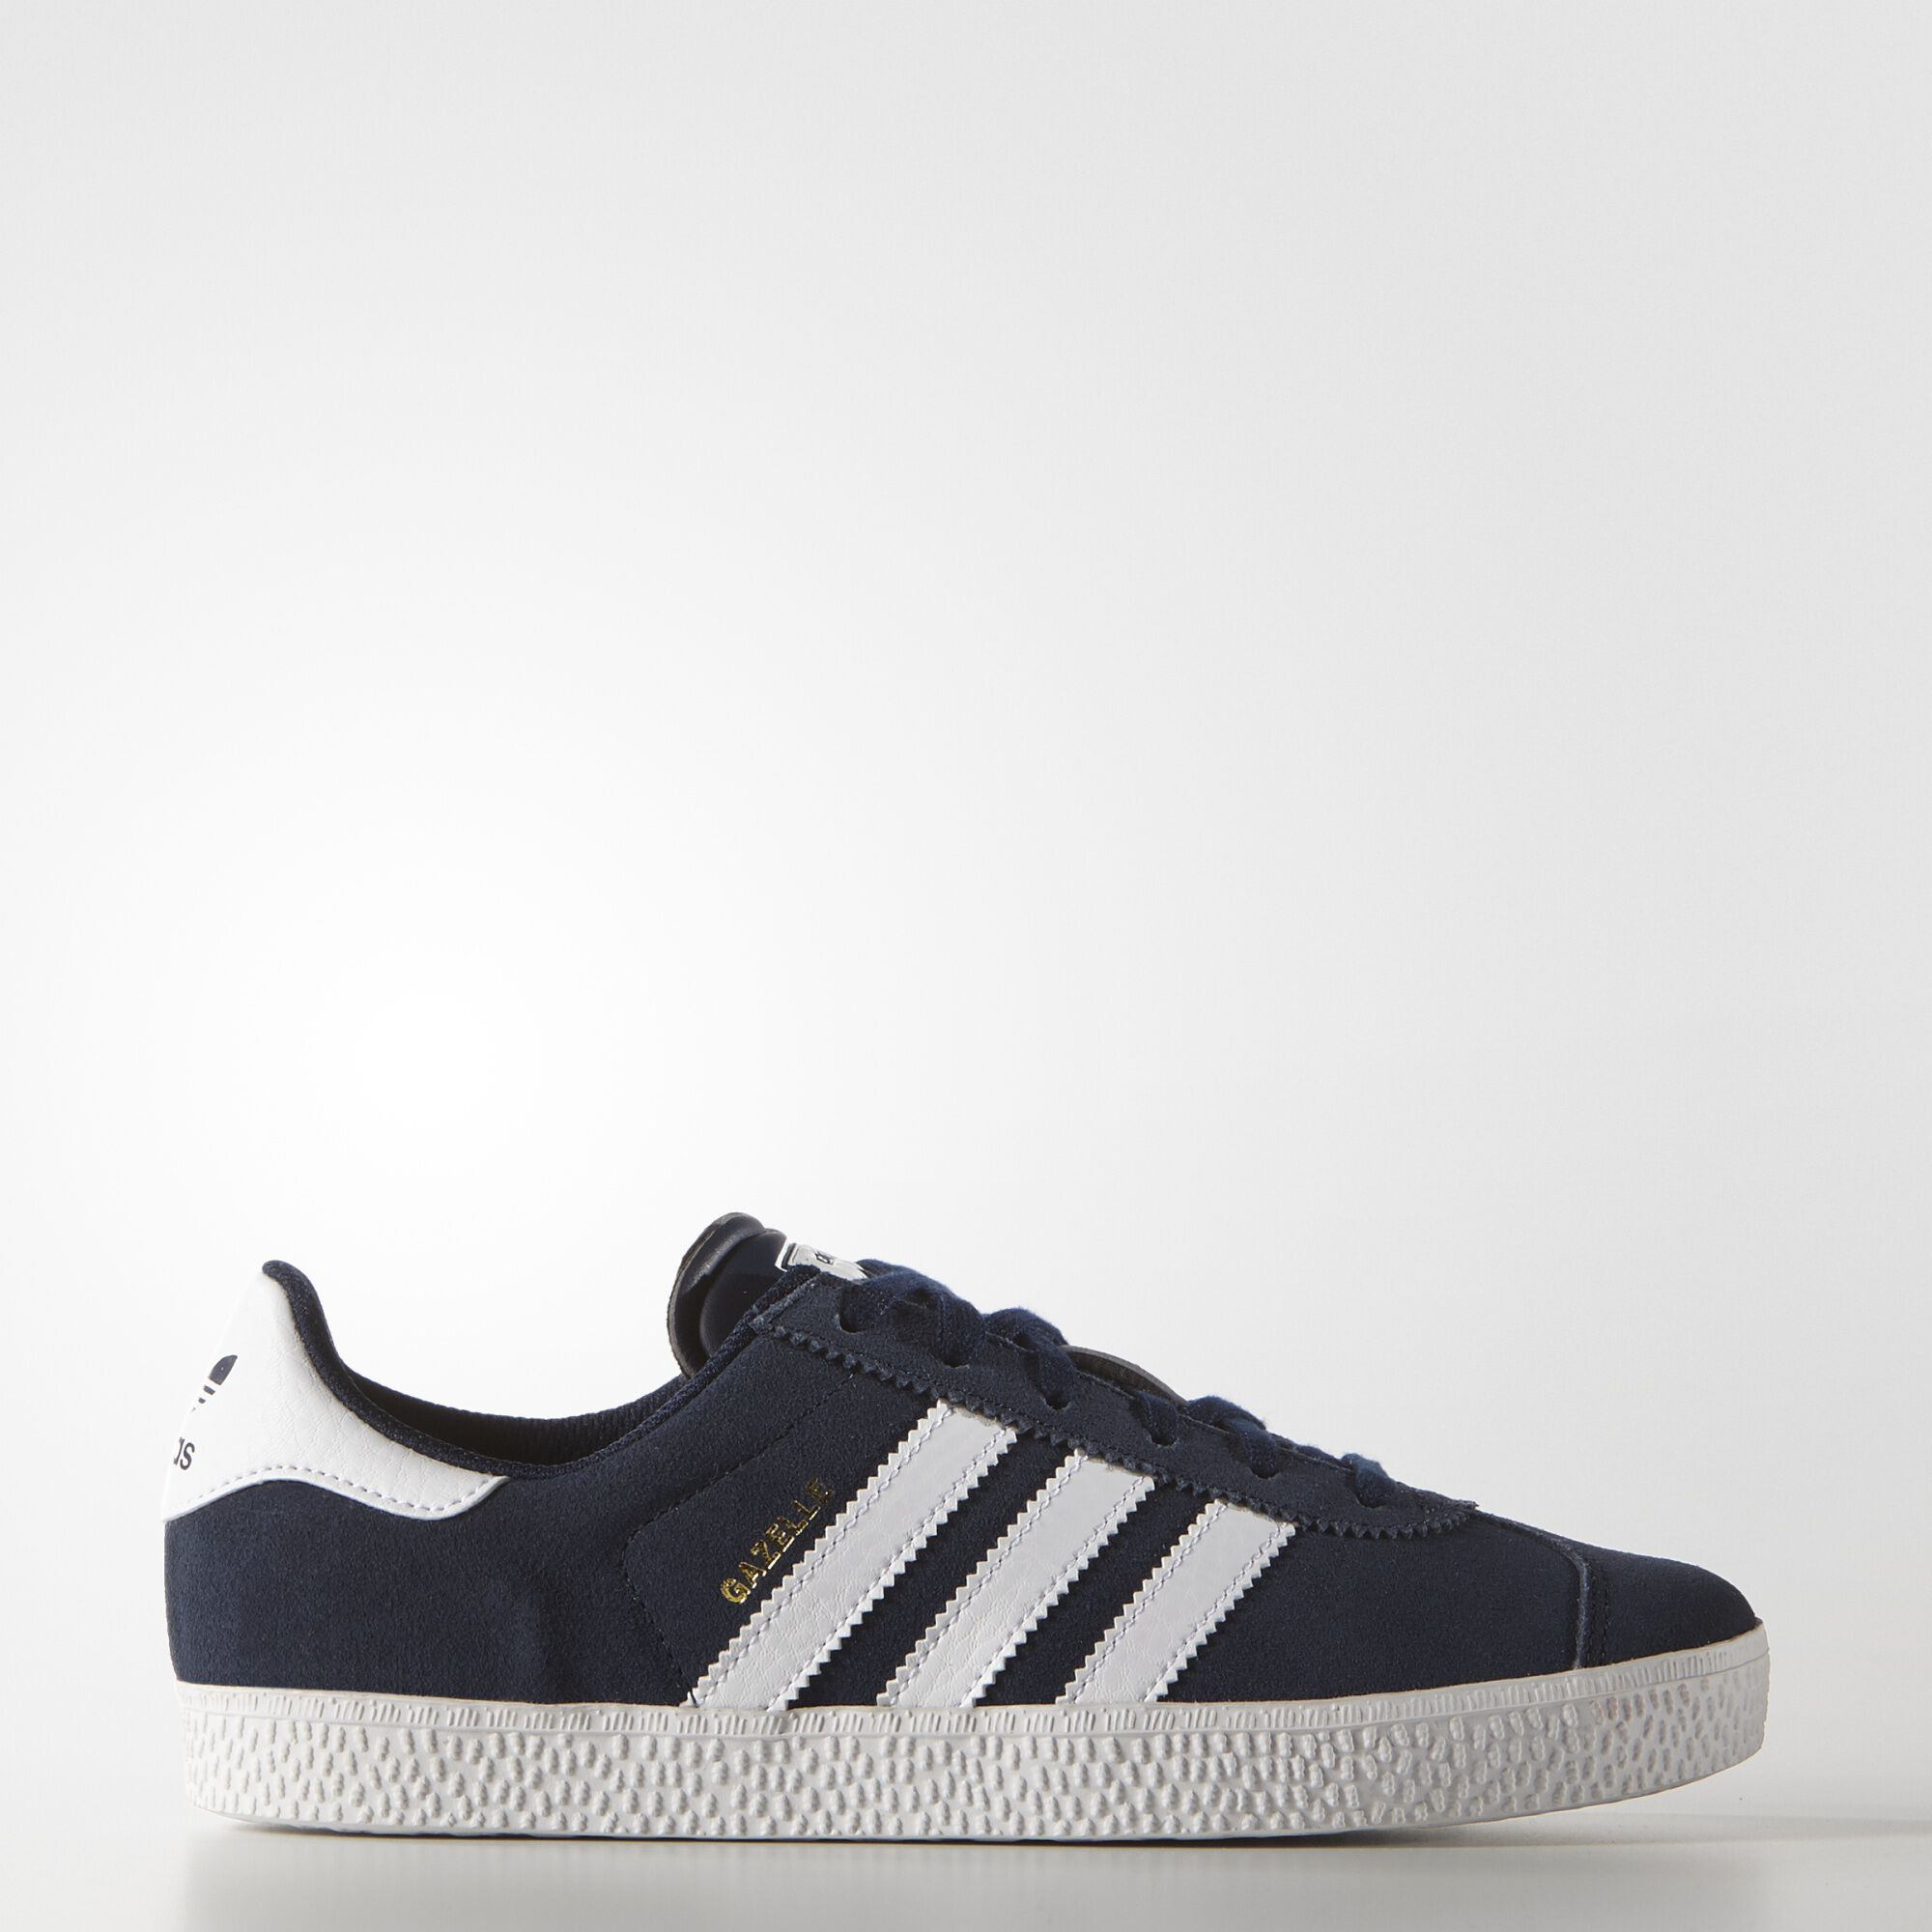 gazelle 2.0 shoes